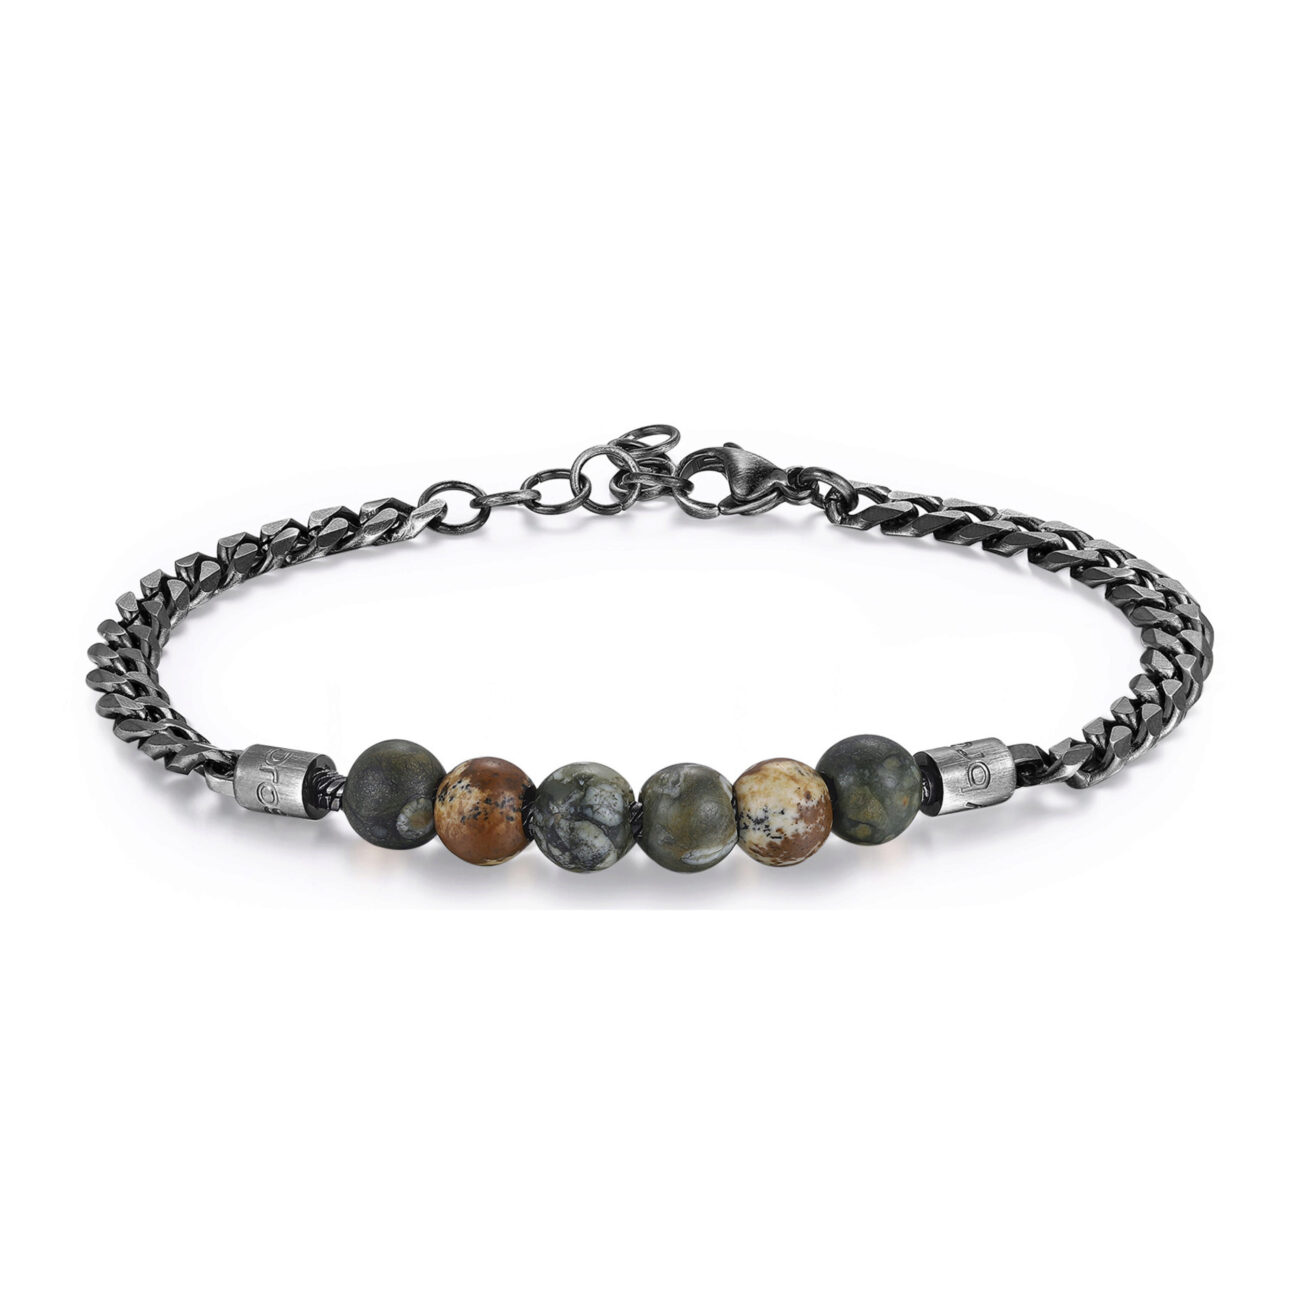 316L stainless steel composable bracelet and finishes gun with nephrite jade and paesina.